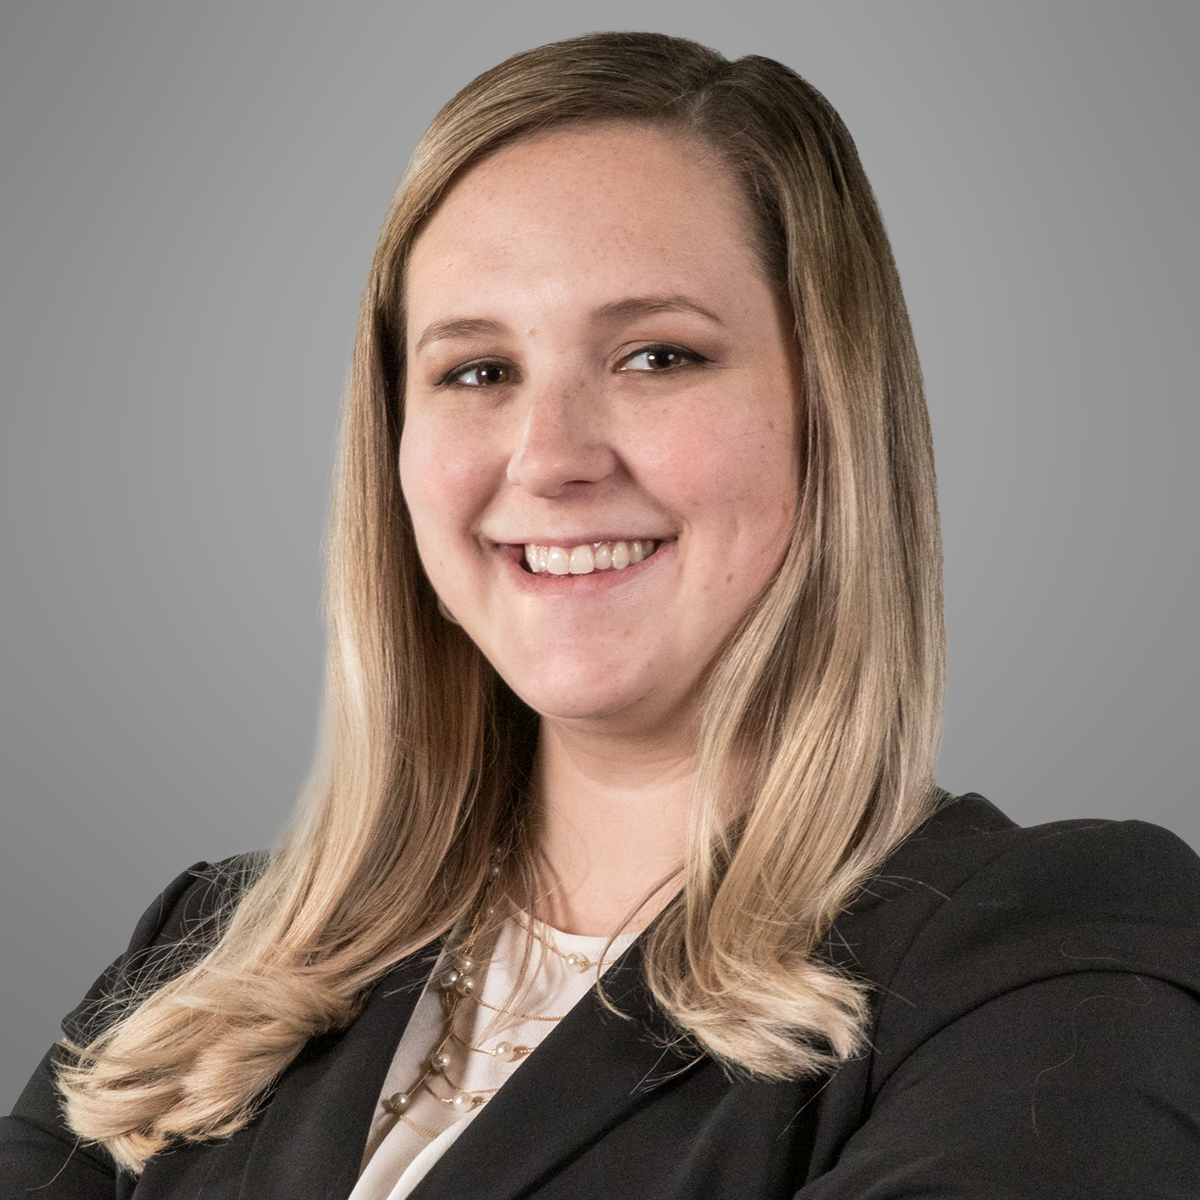 Immigration Lawyer in North Carolina McCatherine Painter